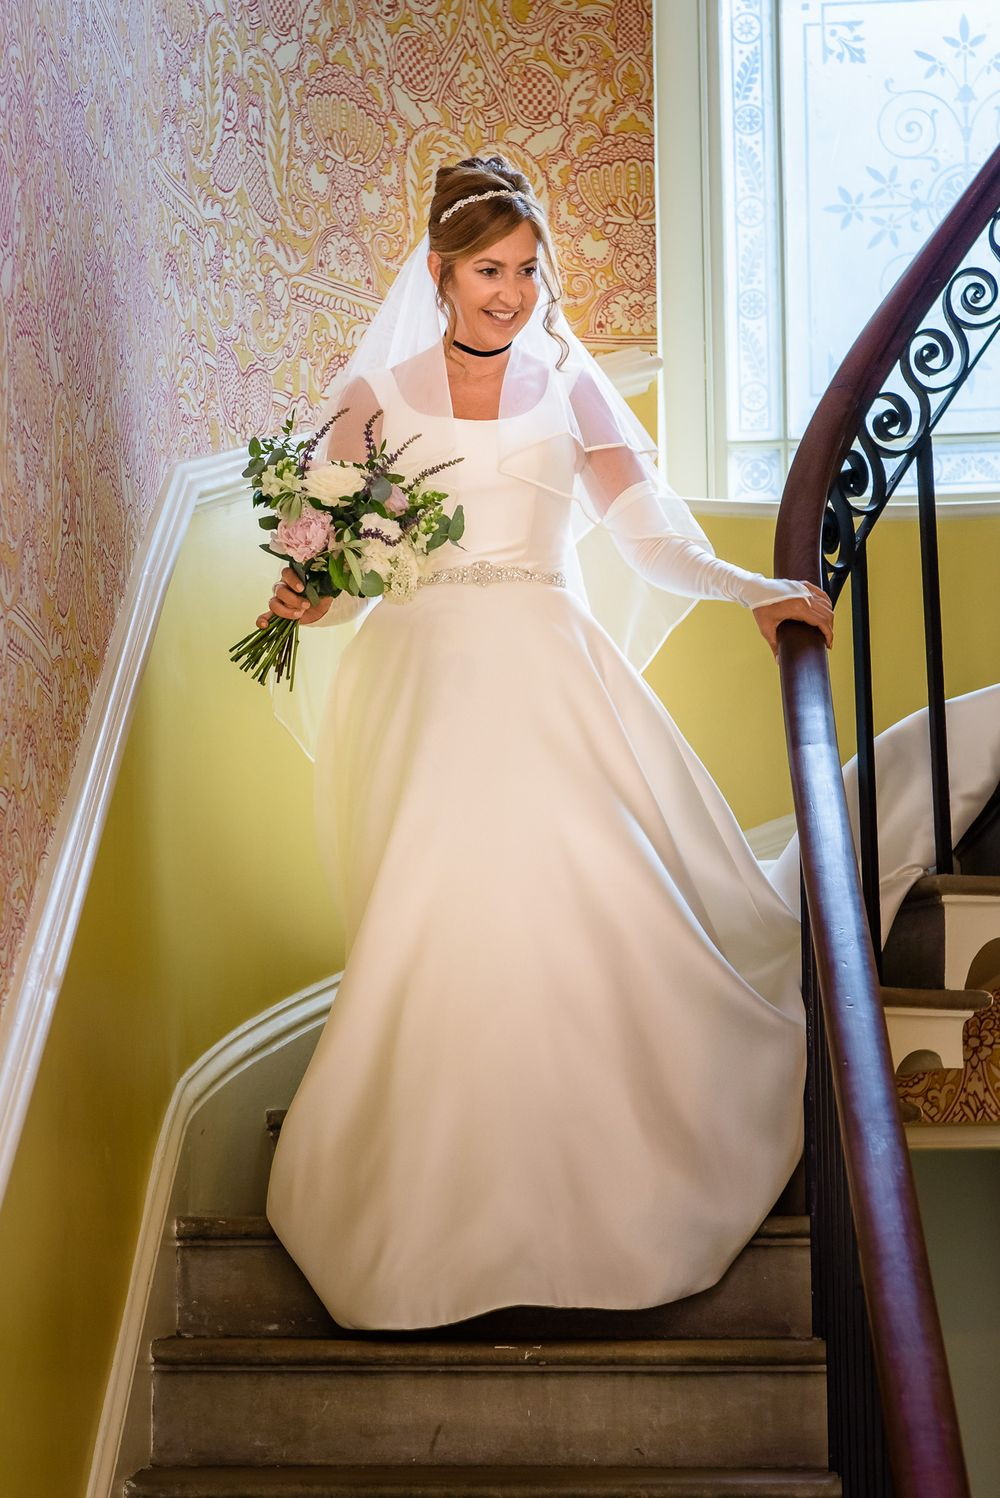 Bride coming down stairs at Silverholme Manor